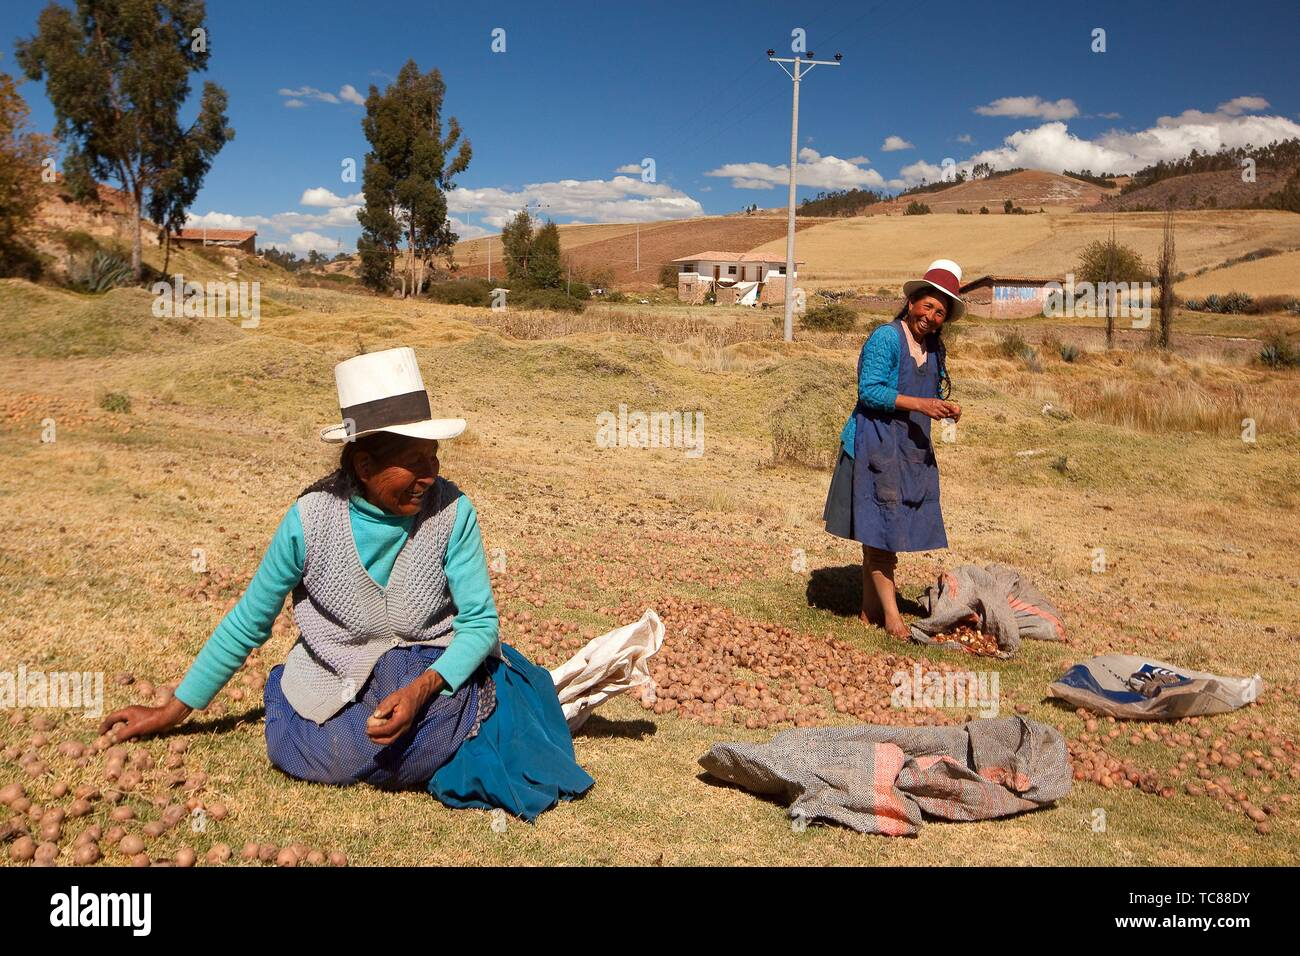 Indigenous women of Sacred Valley with bowler hats picking and squashing potatoes with their feet, Cusco Region, Peru, South America - Stock Image